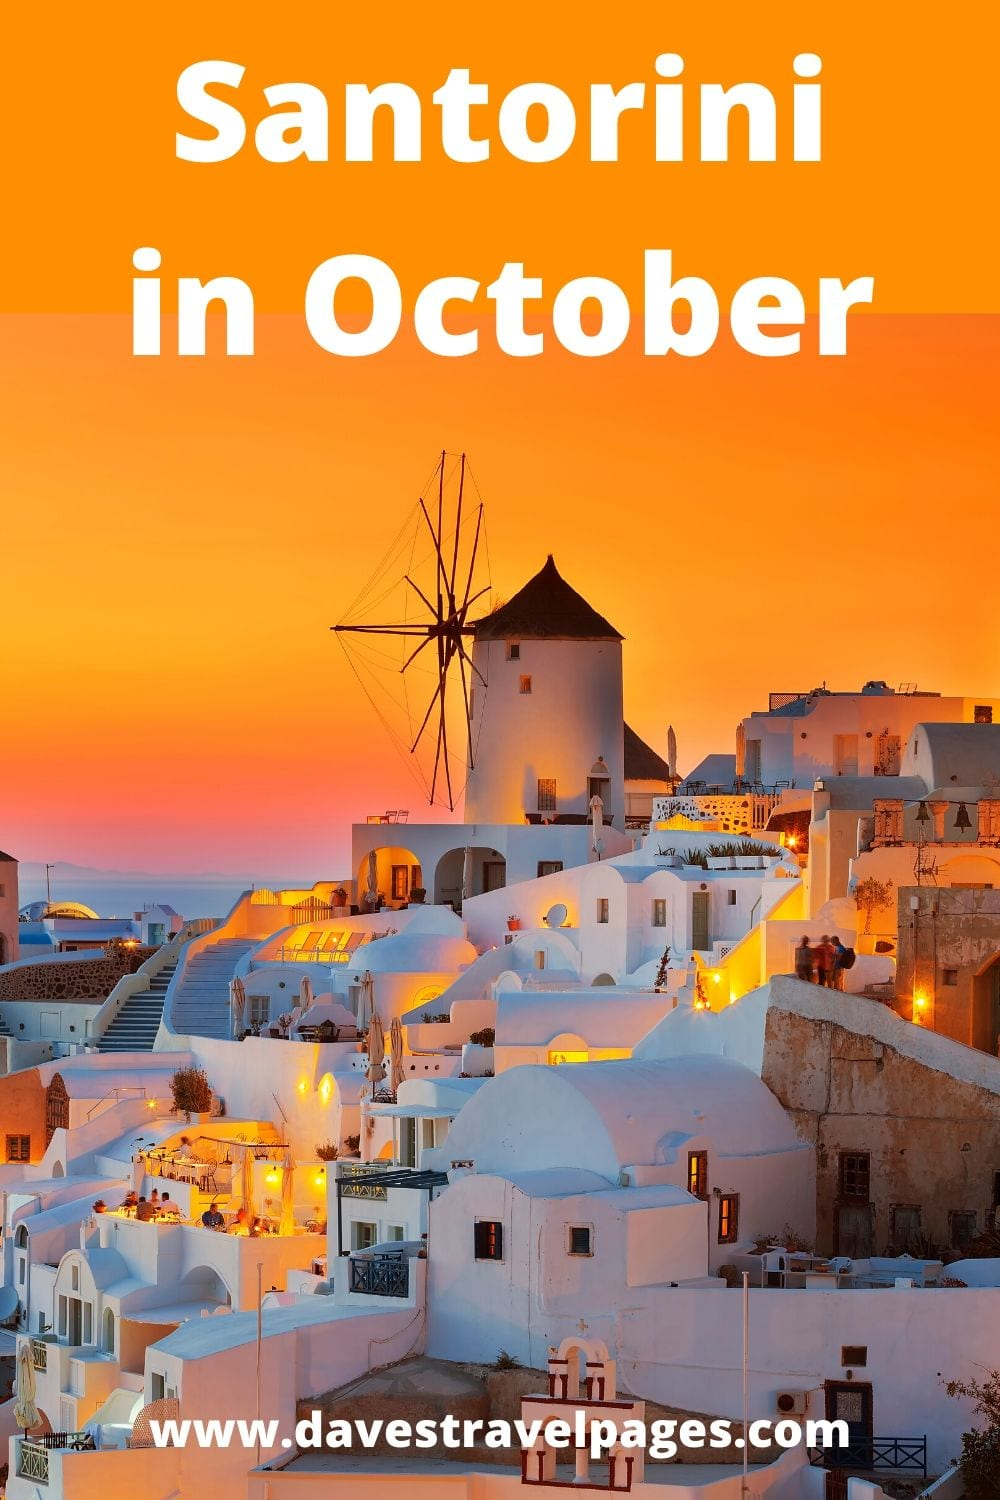 A travel guide to visiting Santorini in October - Perhaps the perfect time to go to this beautiful Greek island!